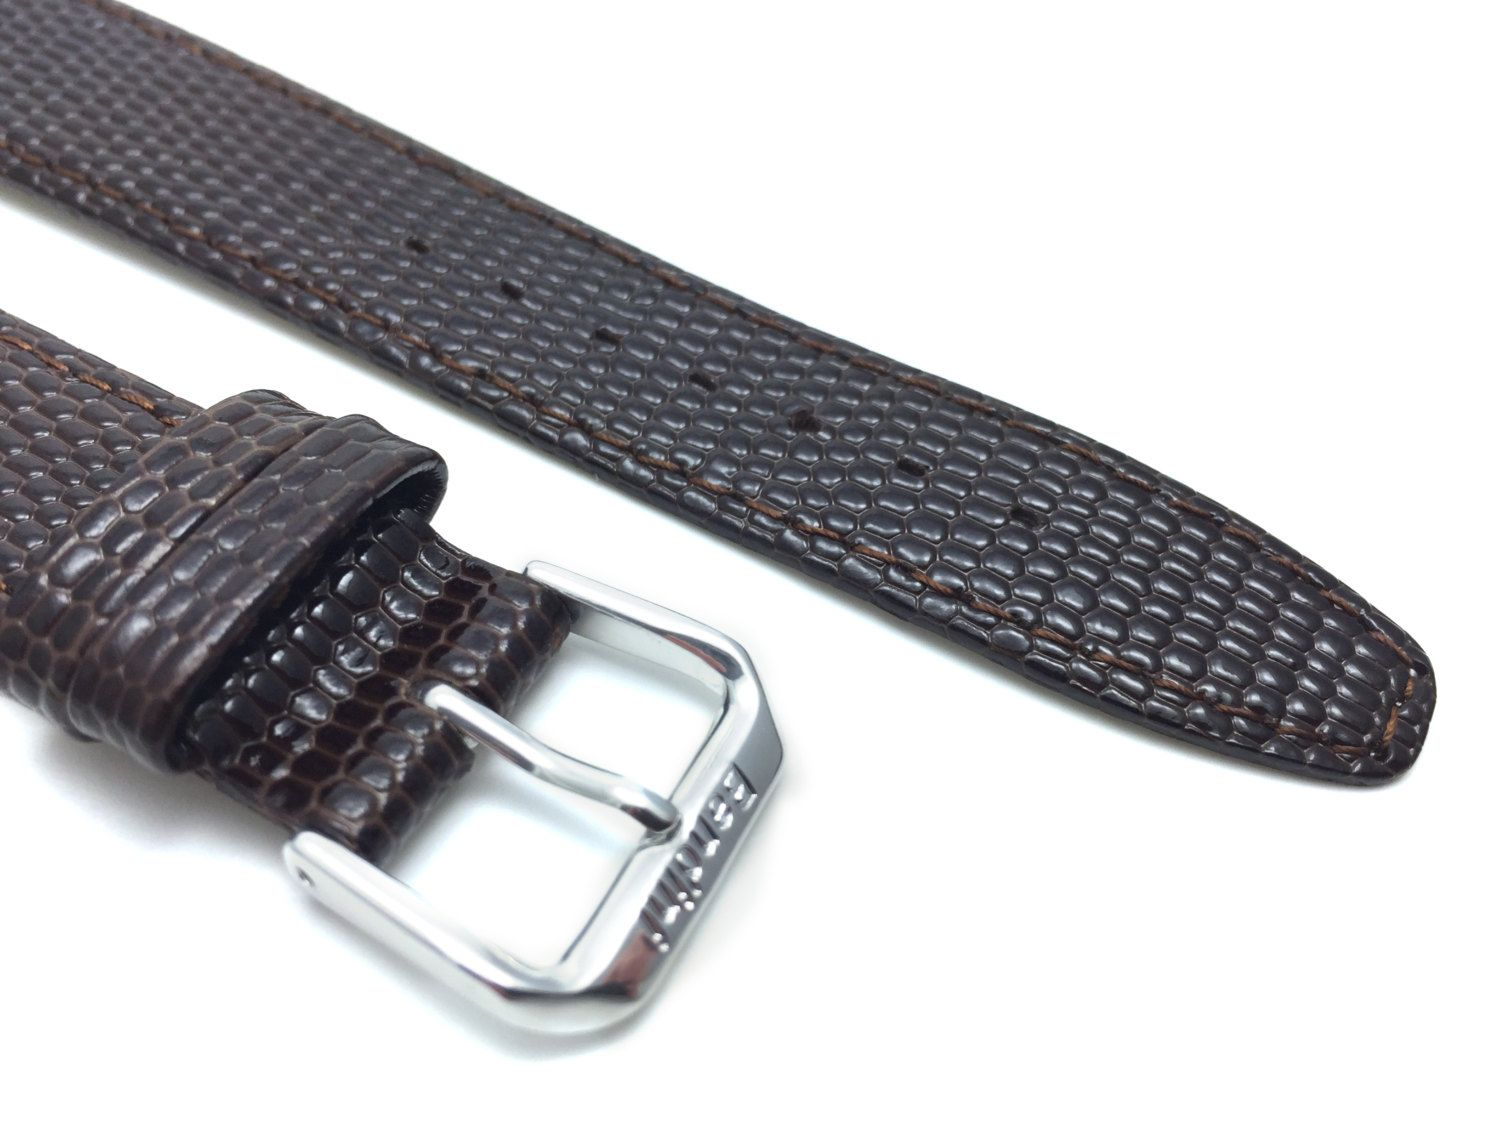 Lizard Skin Pattern Ultra Slim Genuine Leather Brown Watch Strap Band  8mm 10mm 12mm 14mm 16mm 18mm 20mm Anti-Allergic Lining #Watchband #watchstrap#Color #Reuse #Recycle #whatsoldisnew #watches #Etsy #ShopTicToc